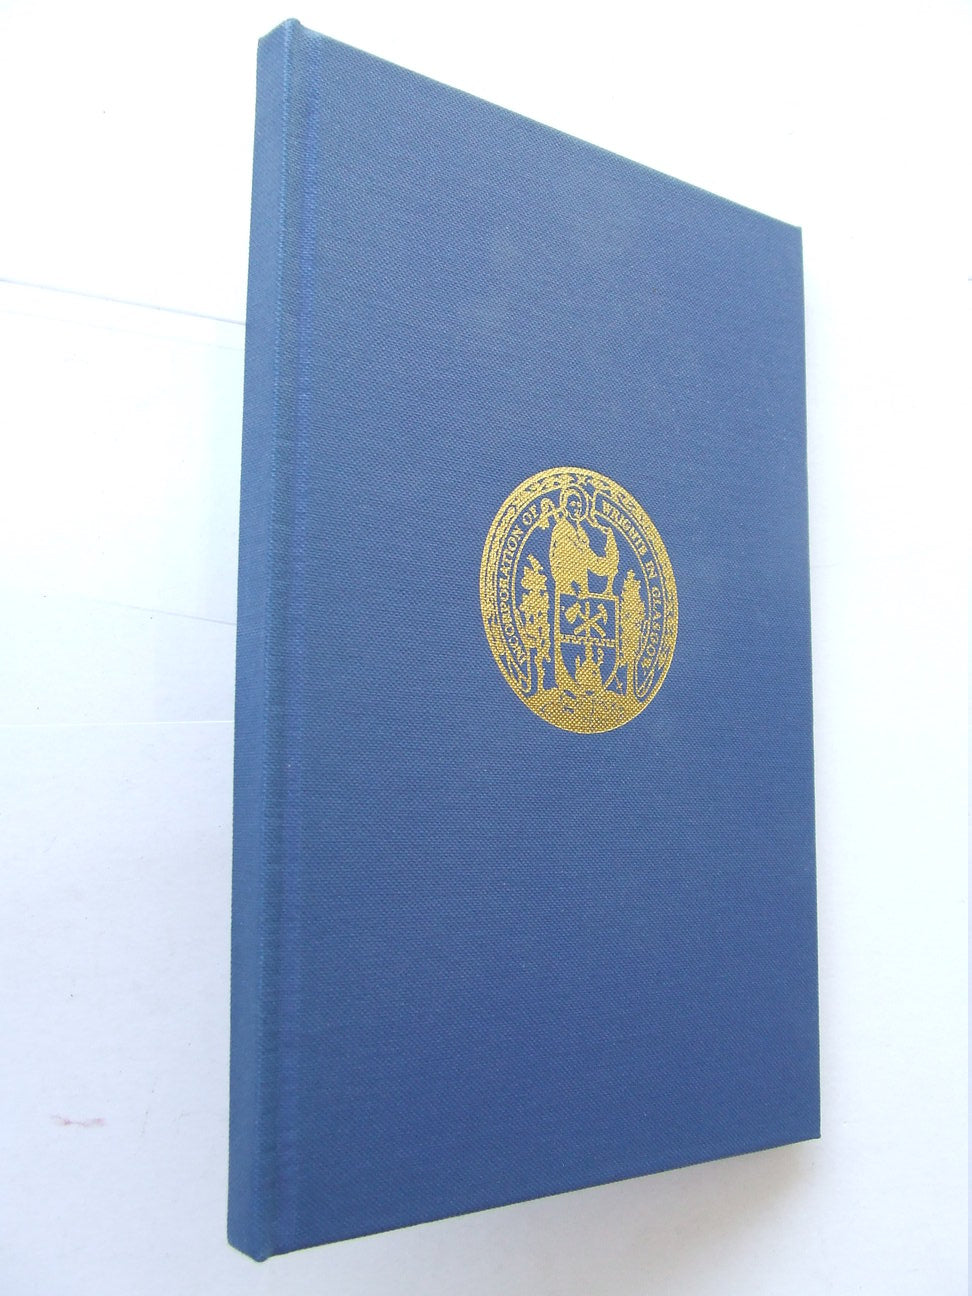 The Incorporation of Wrights in Glasgow [8th edition]